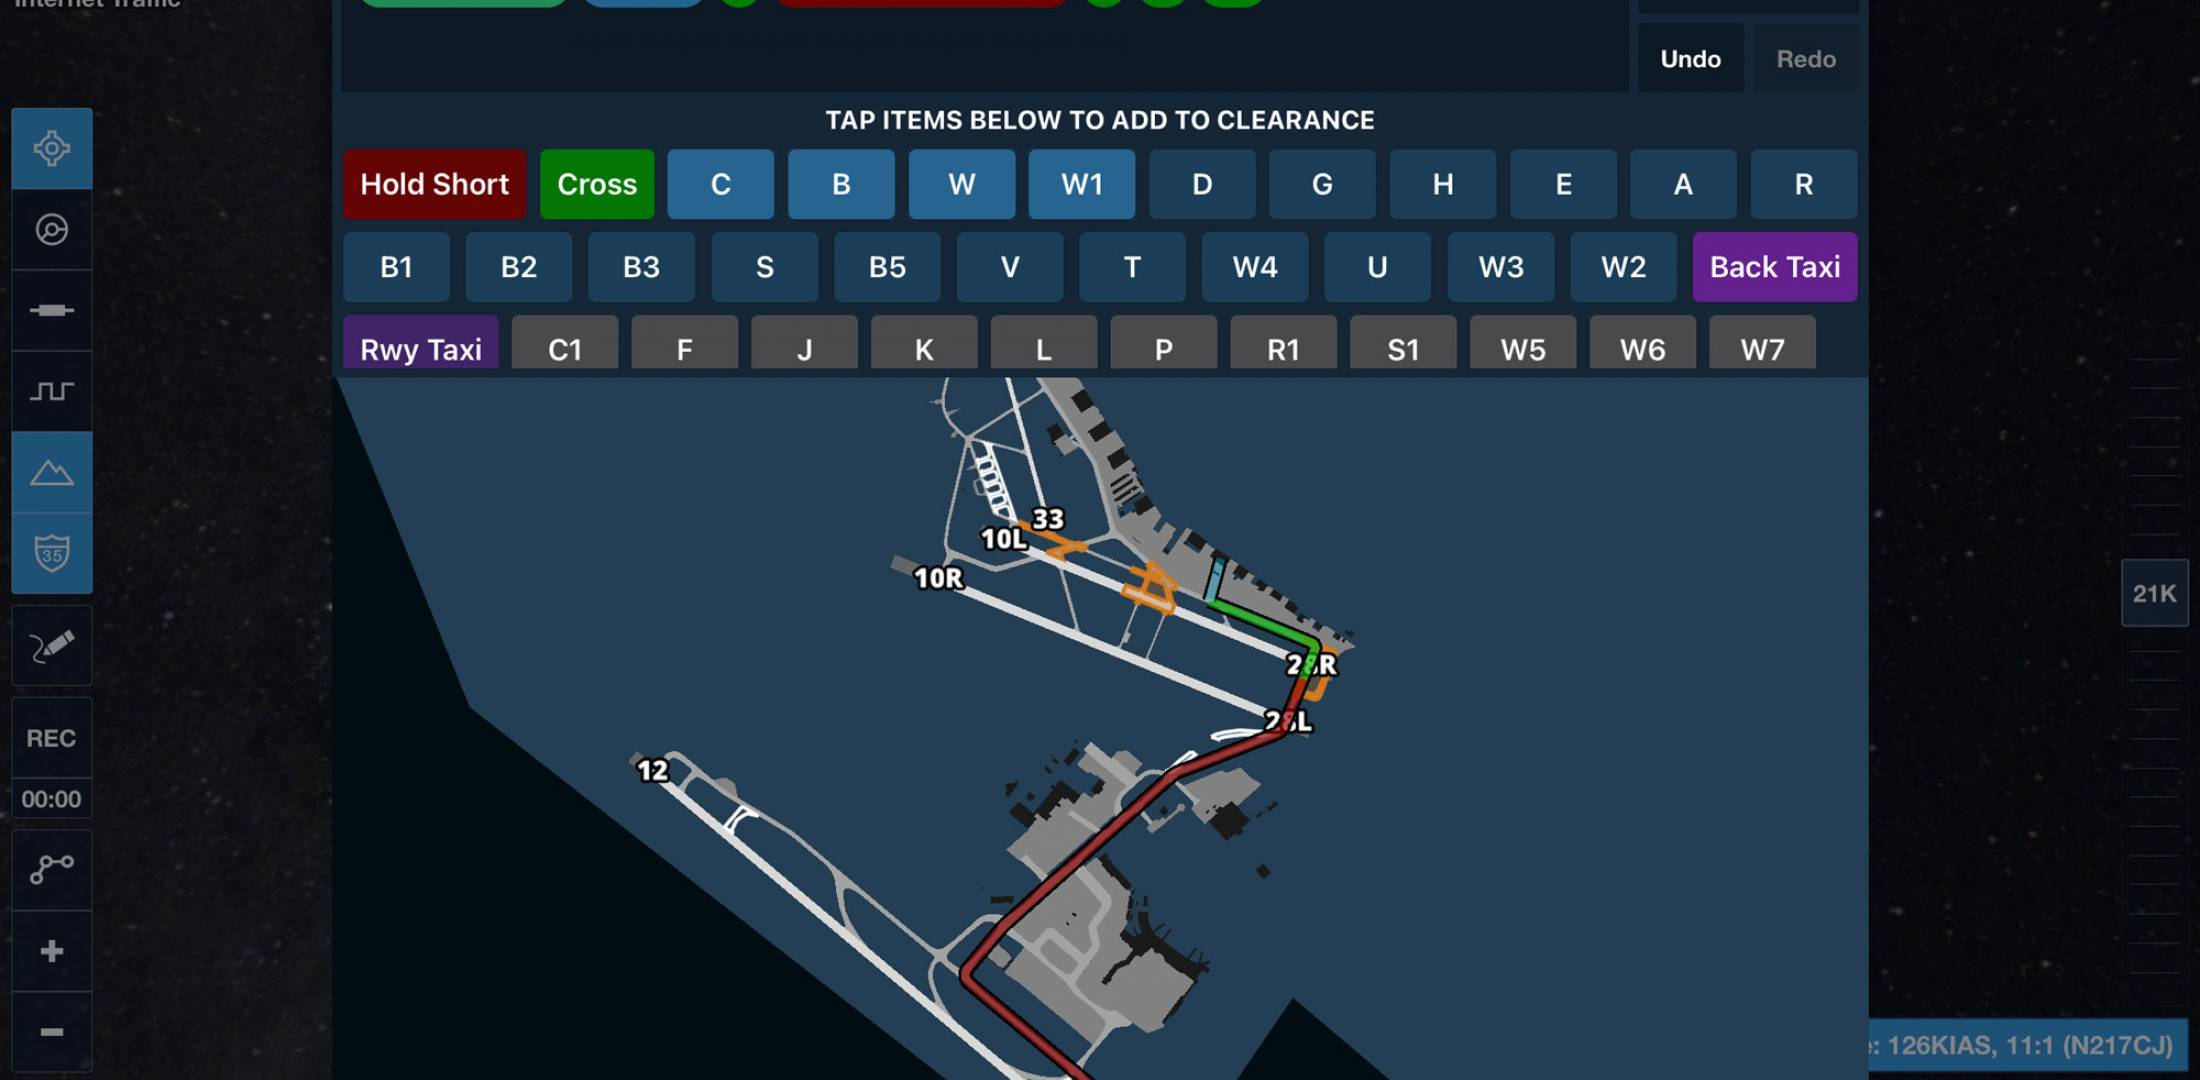 Taxi Routing feature in ForeFlight